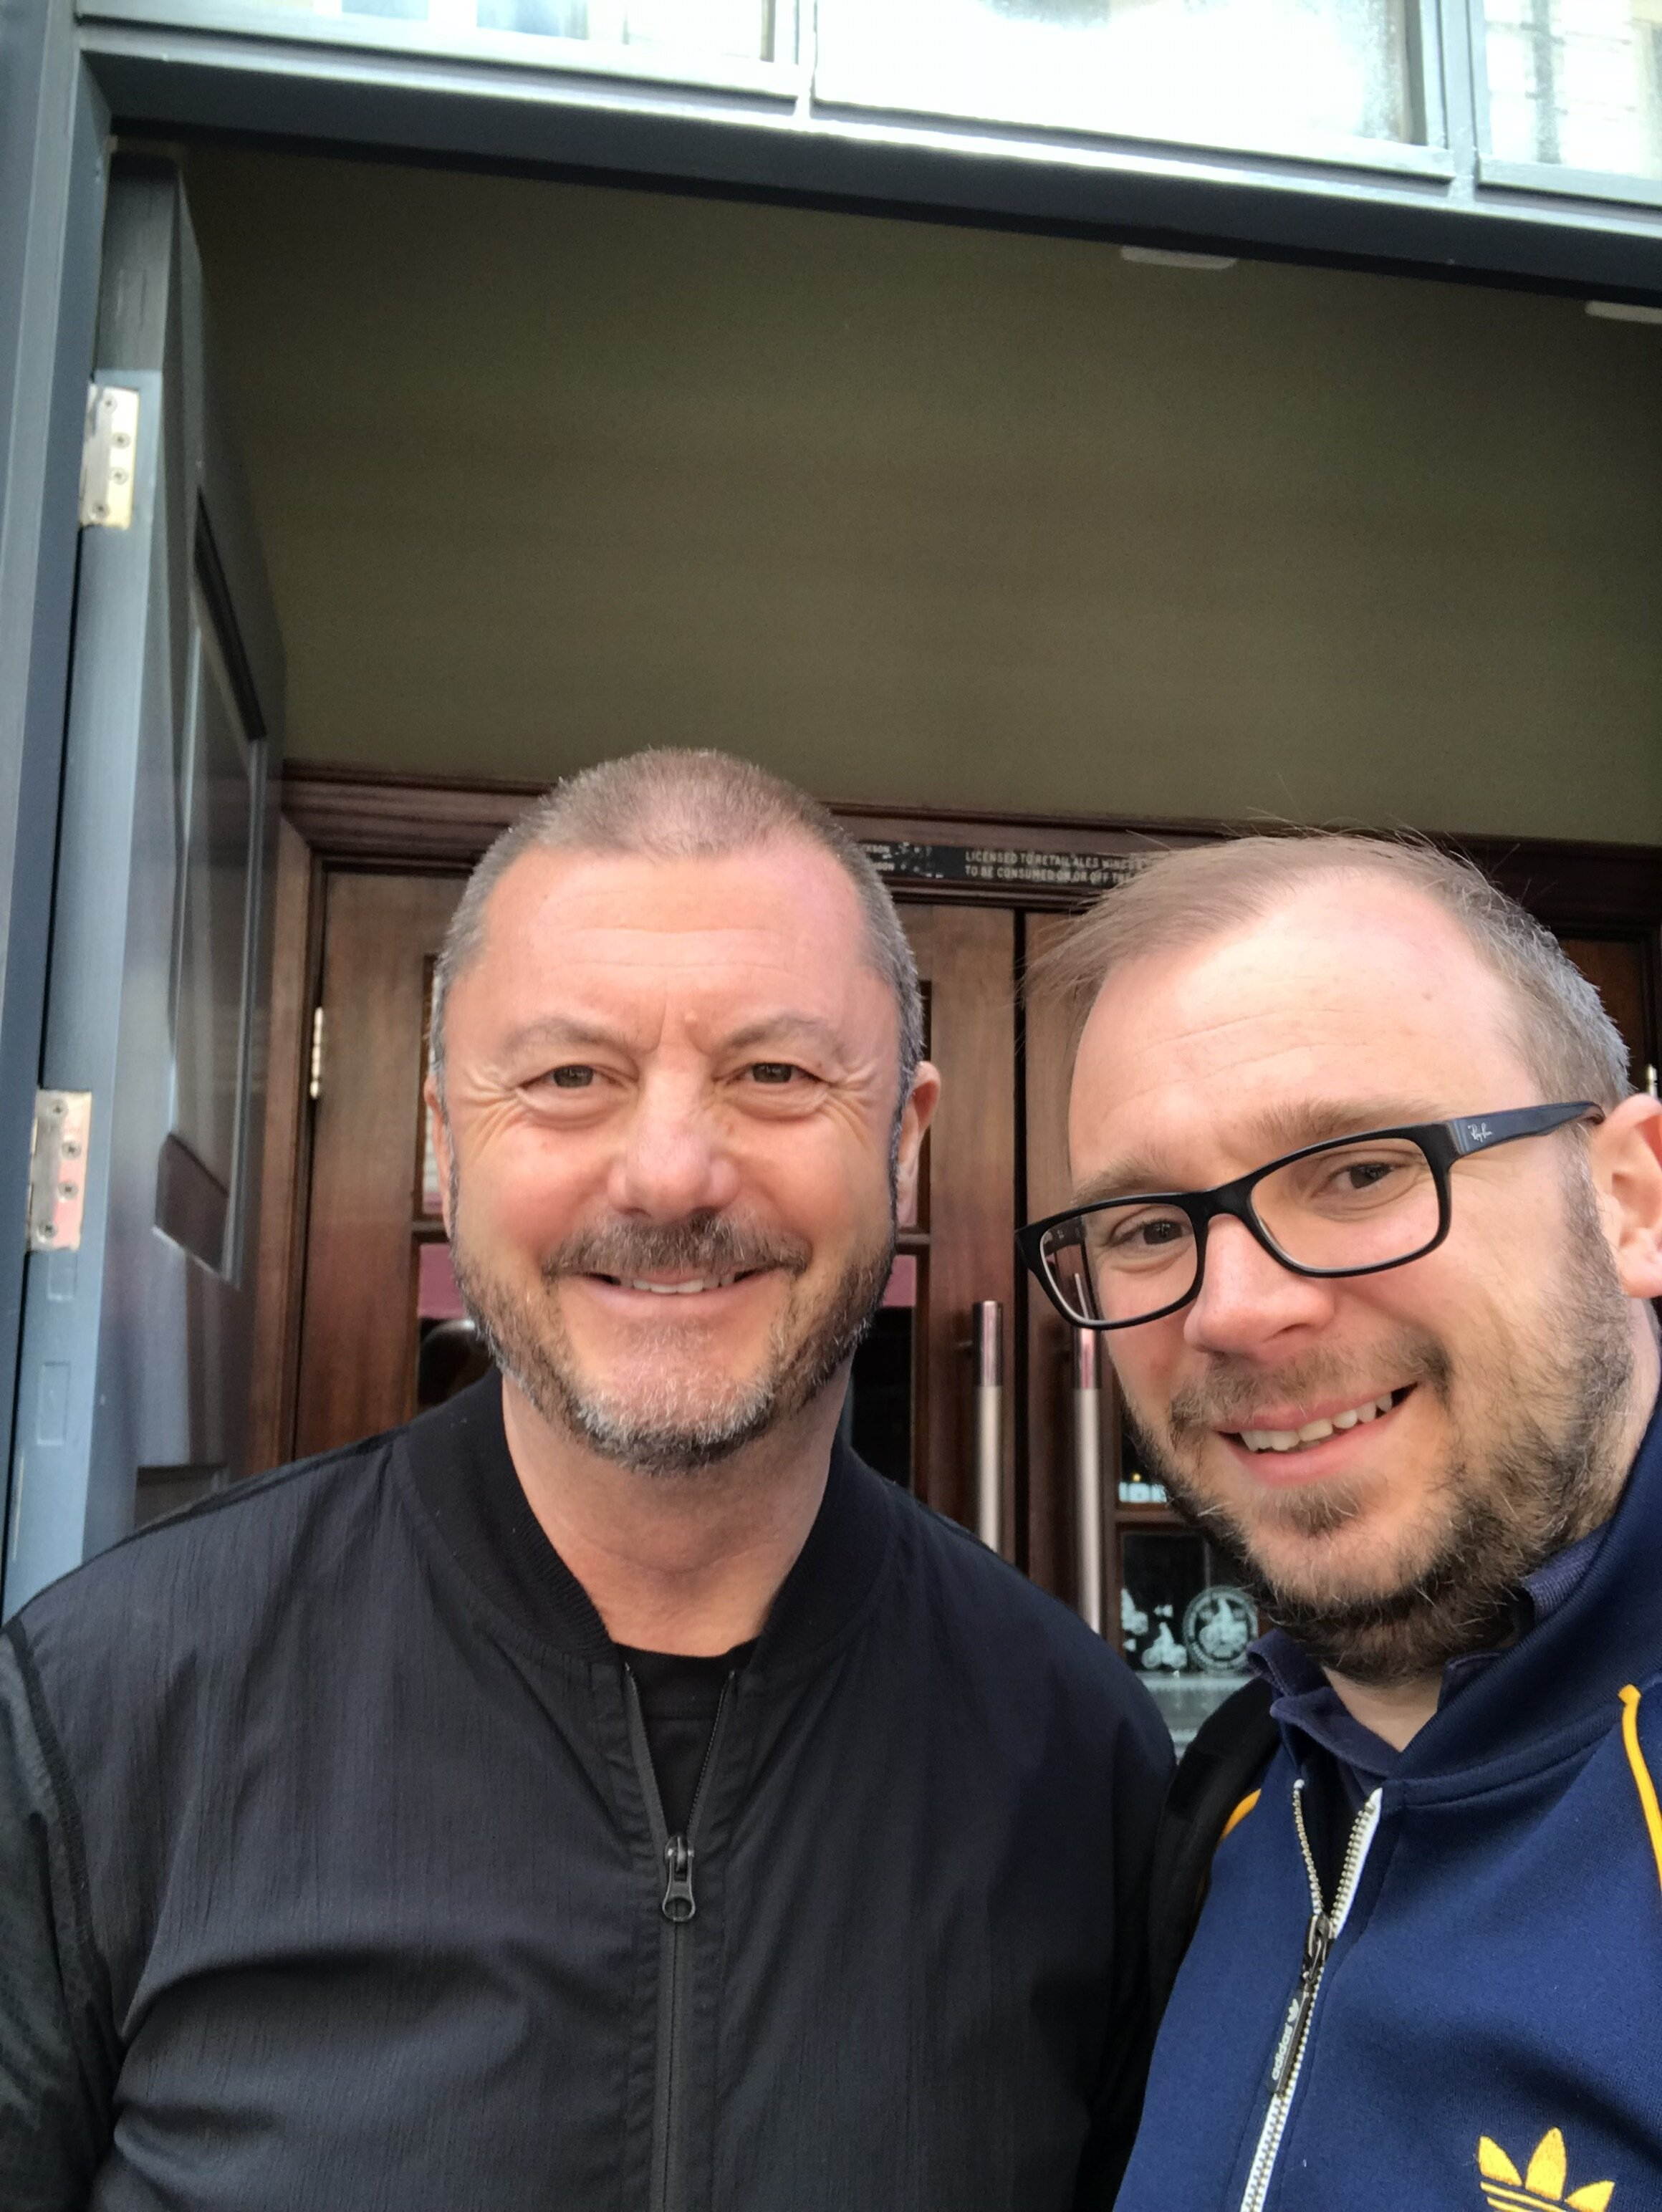 Ben with Keith at the Bacchus in Newcastle